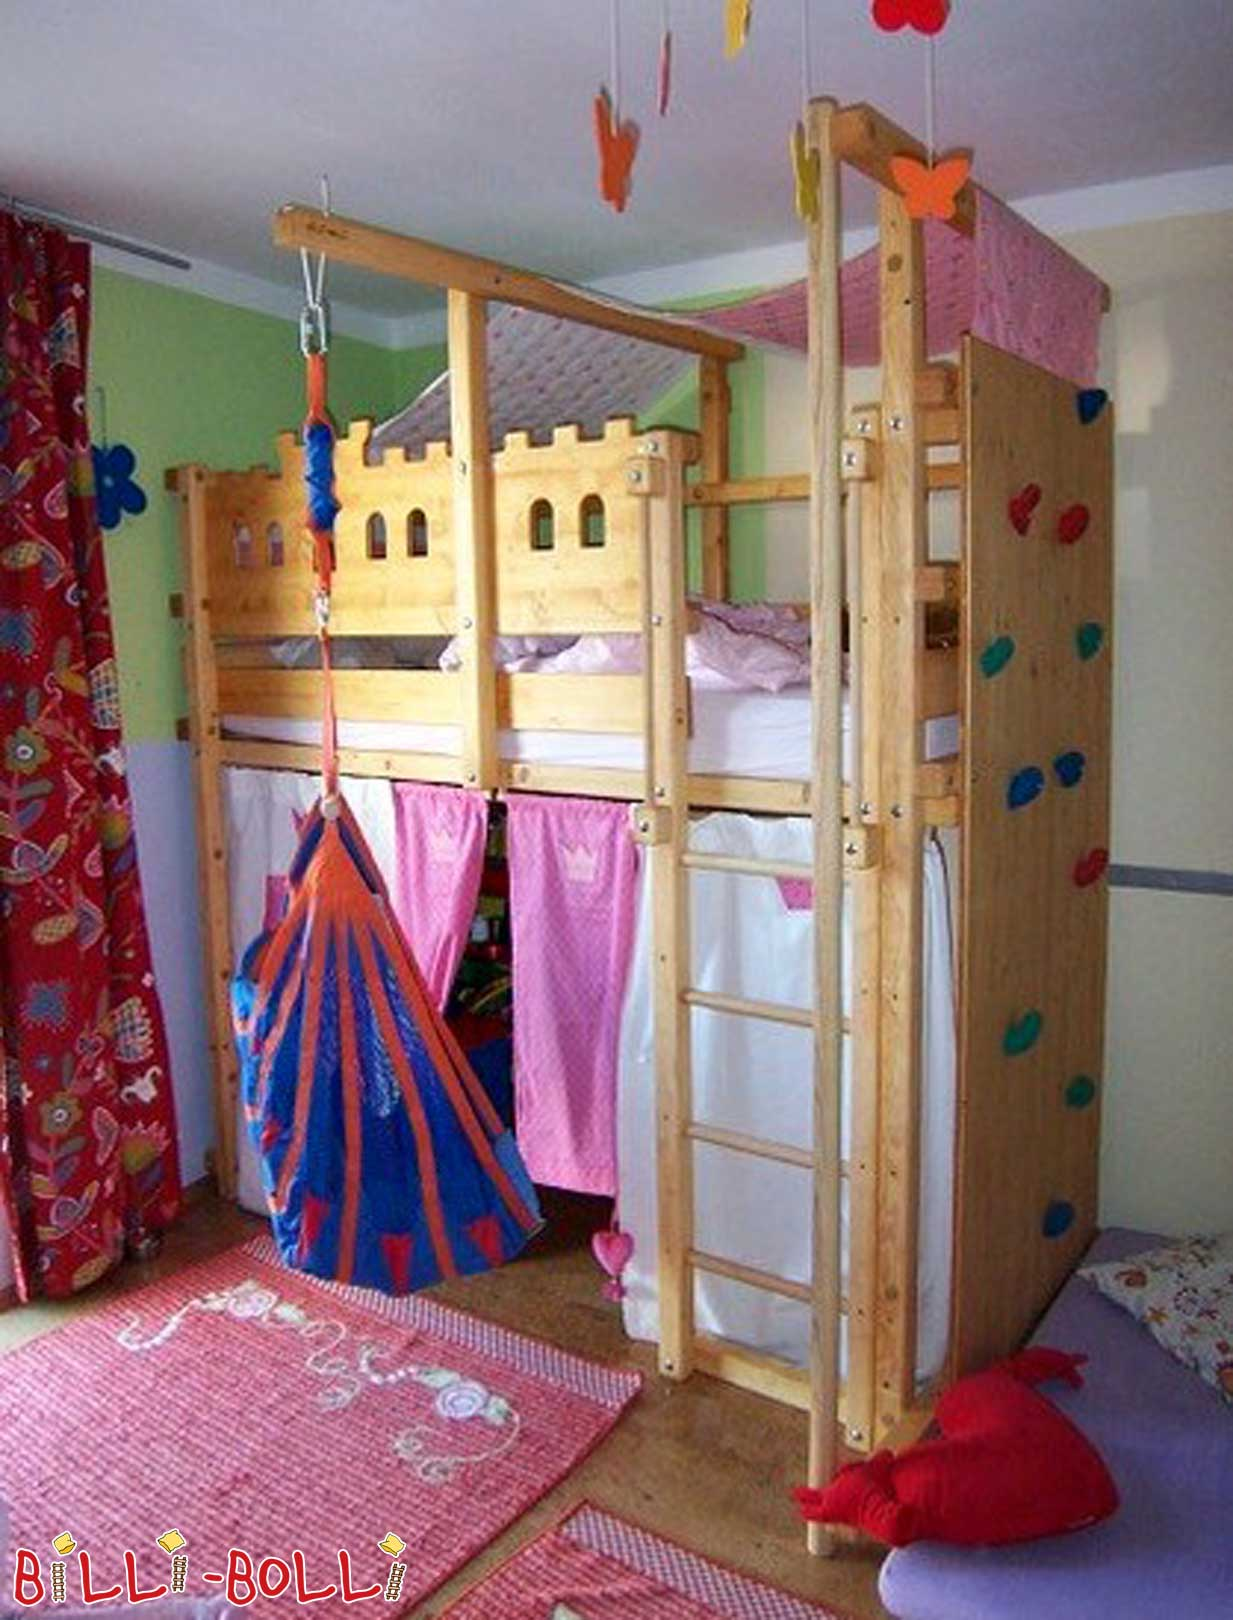 High bed with fire brigade pole and climbing wall (second hand loft bed)